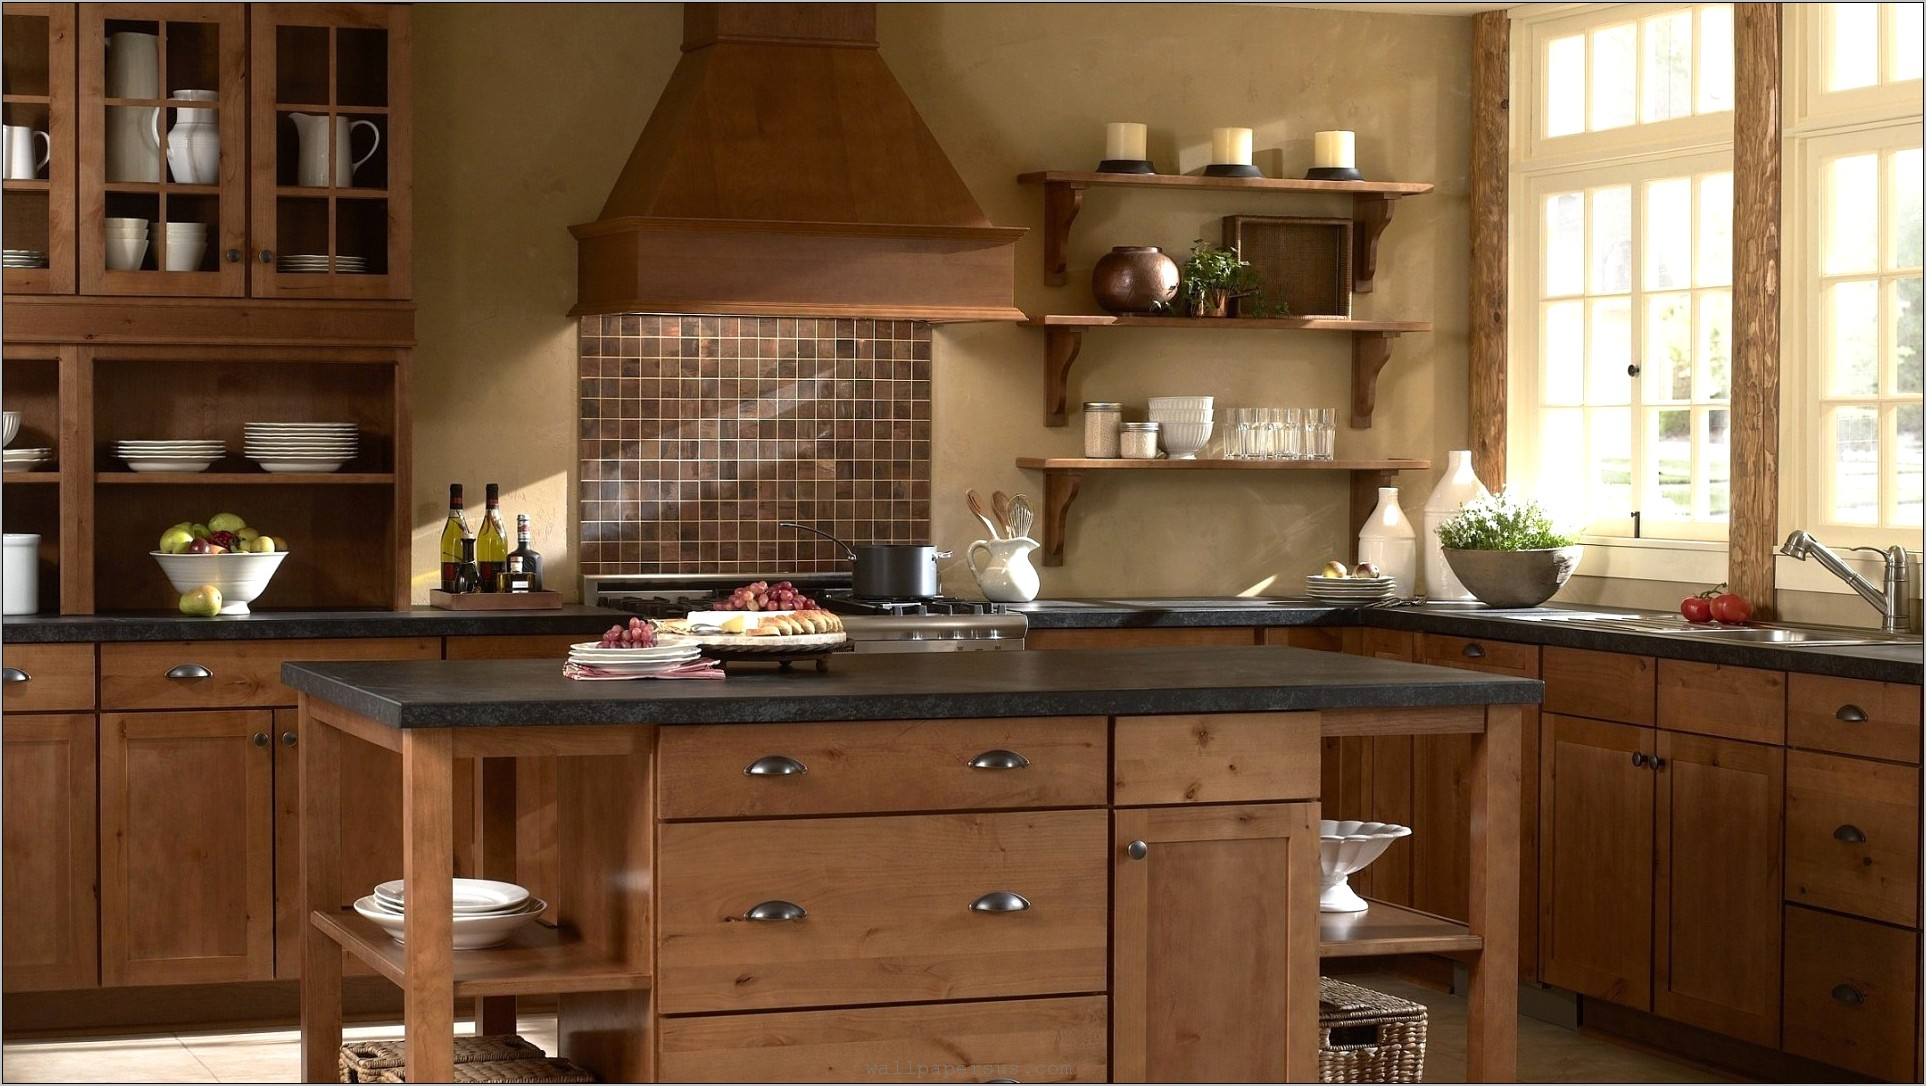 Old Fashioned Kitchen Decorating Ideas